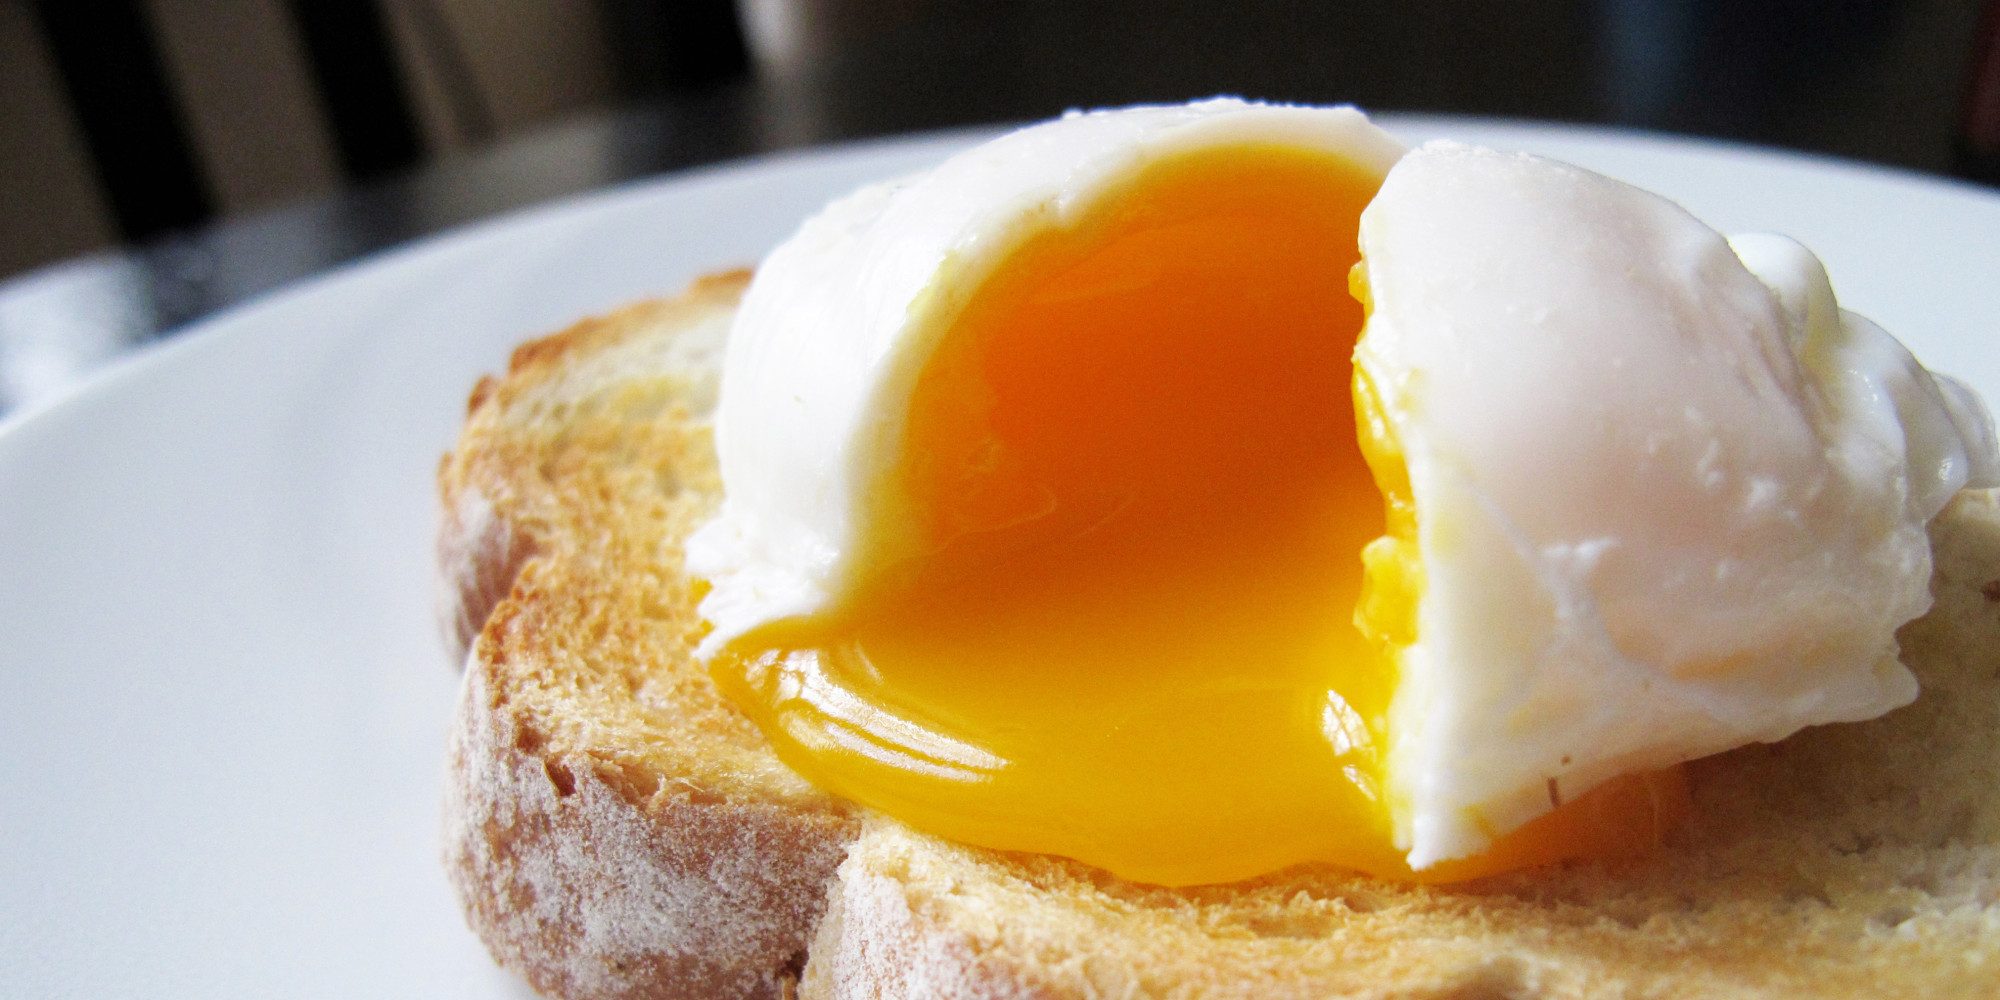 Tricks For The Most Perfect Poached Eggs